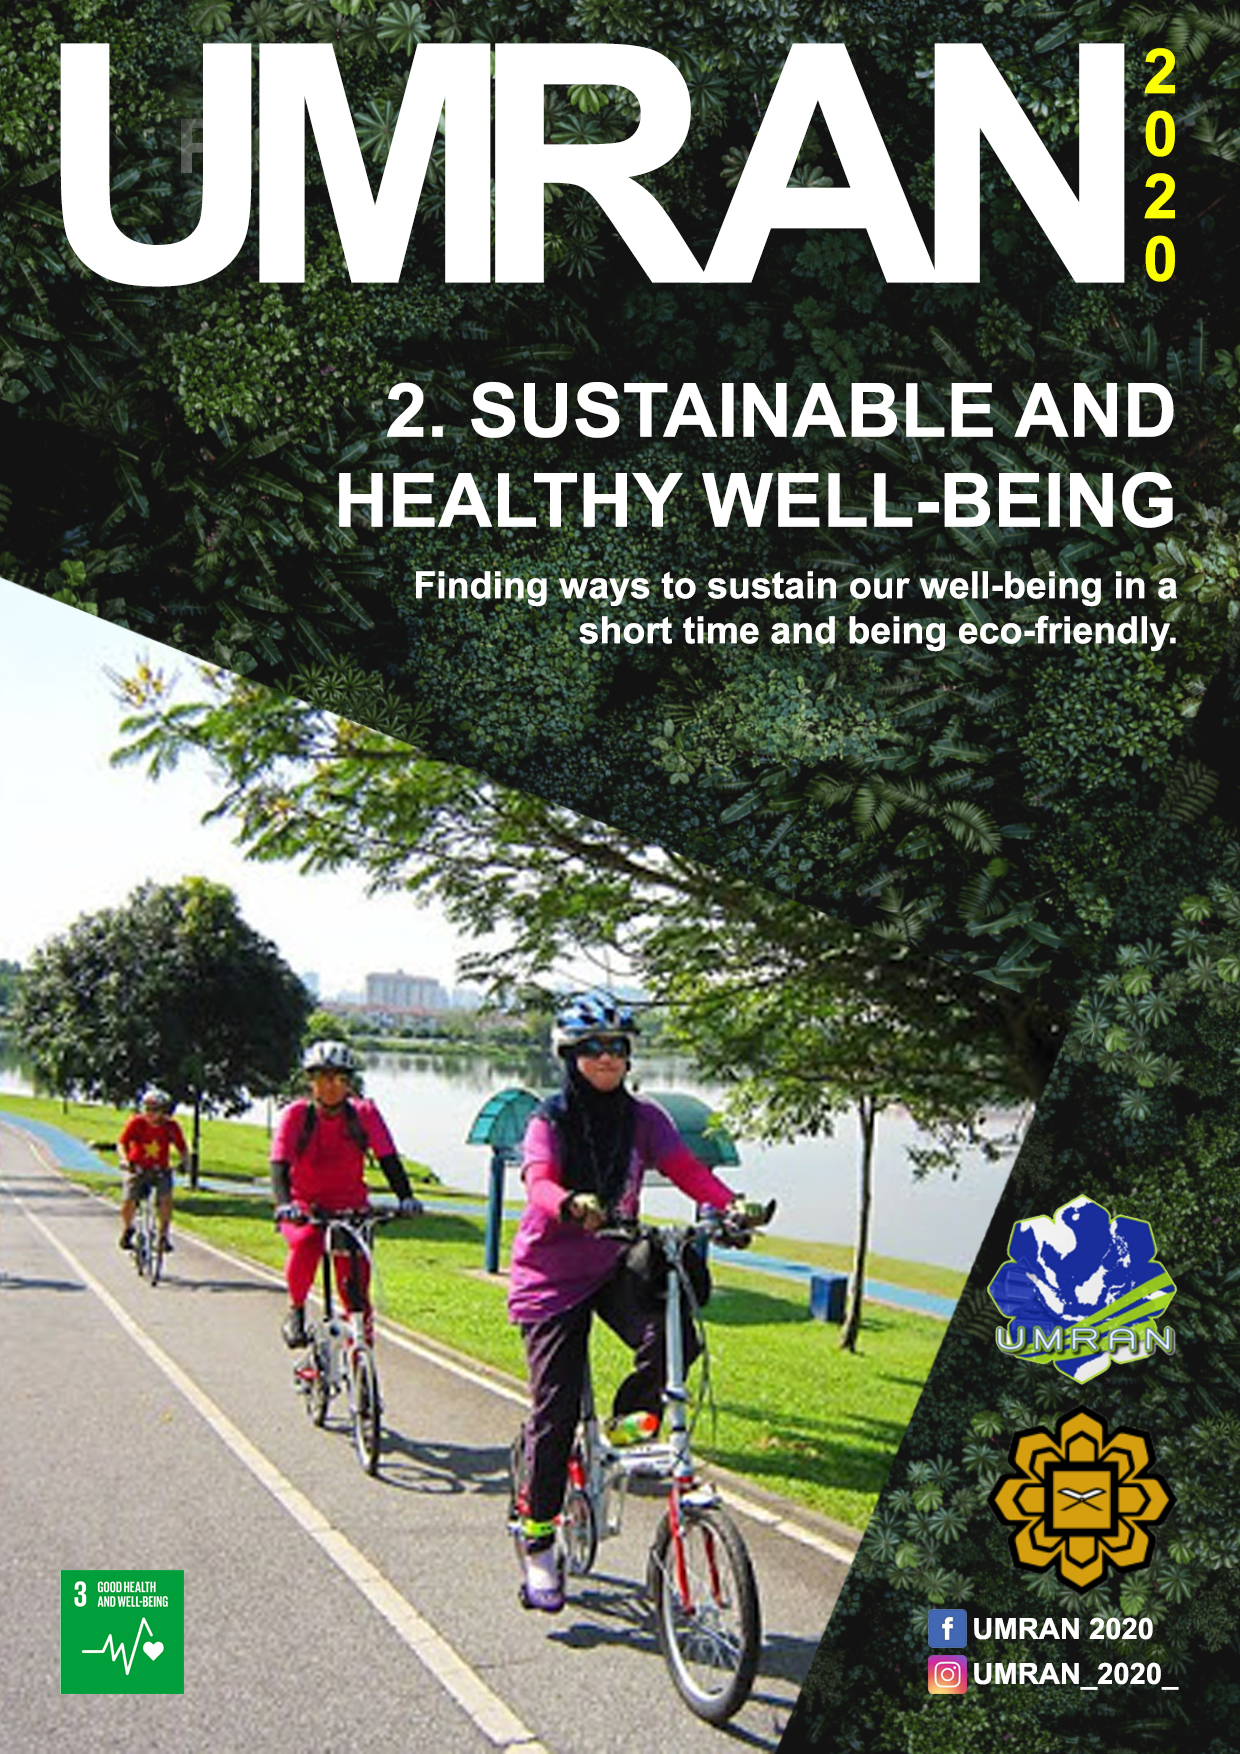 UMRAN 2020: Sustainable and Healthy Well-Being